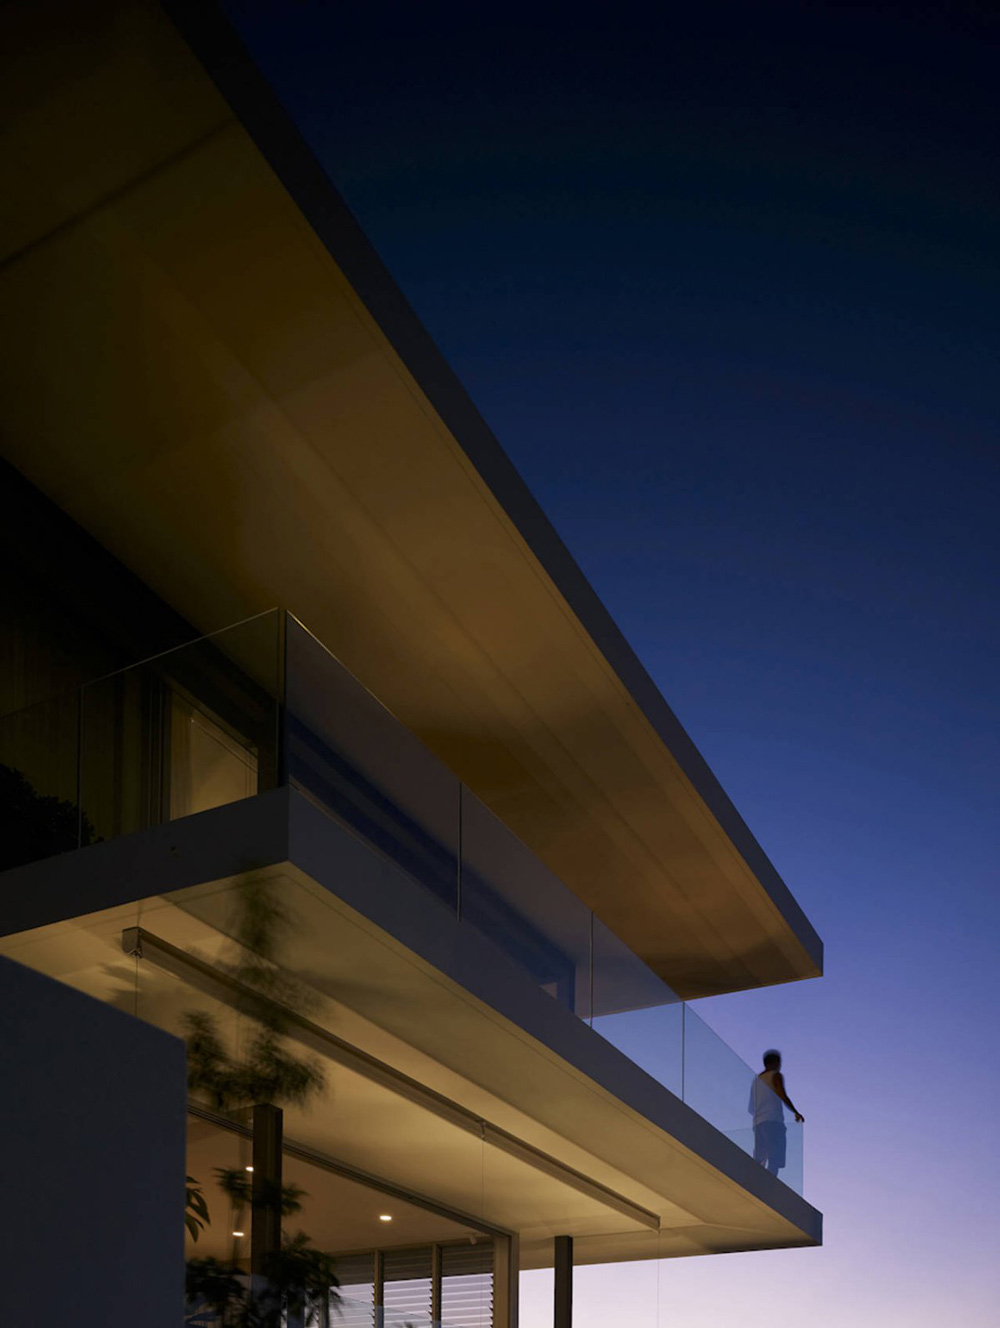 Balcony, Vaucluse House in Sydney, Australia by MPR Design Group